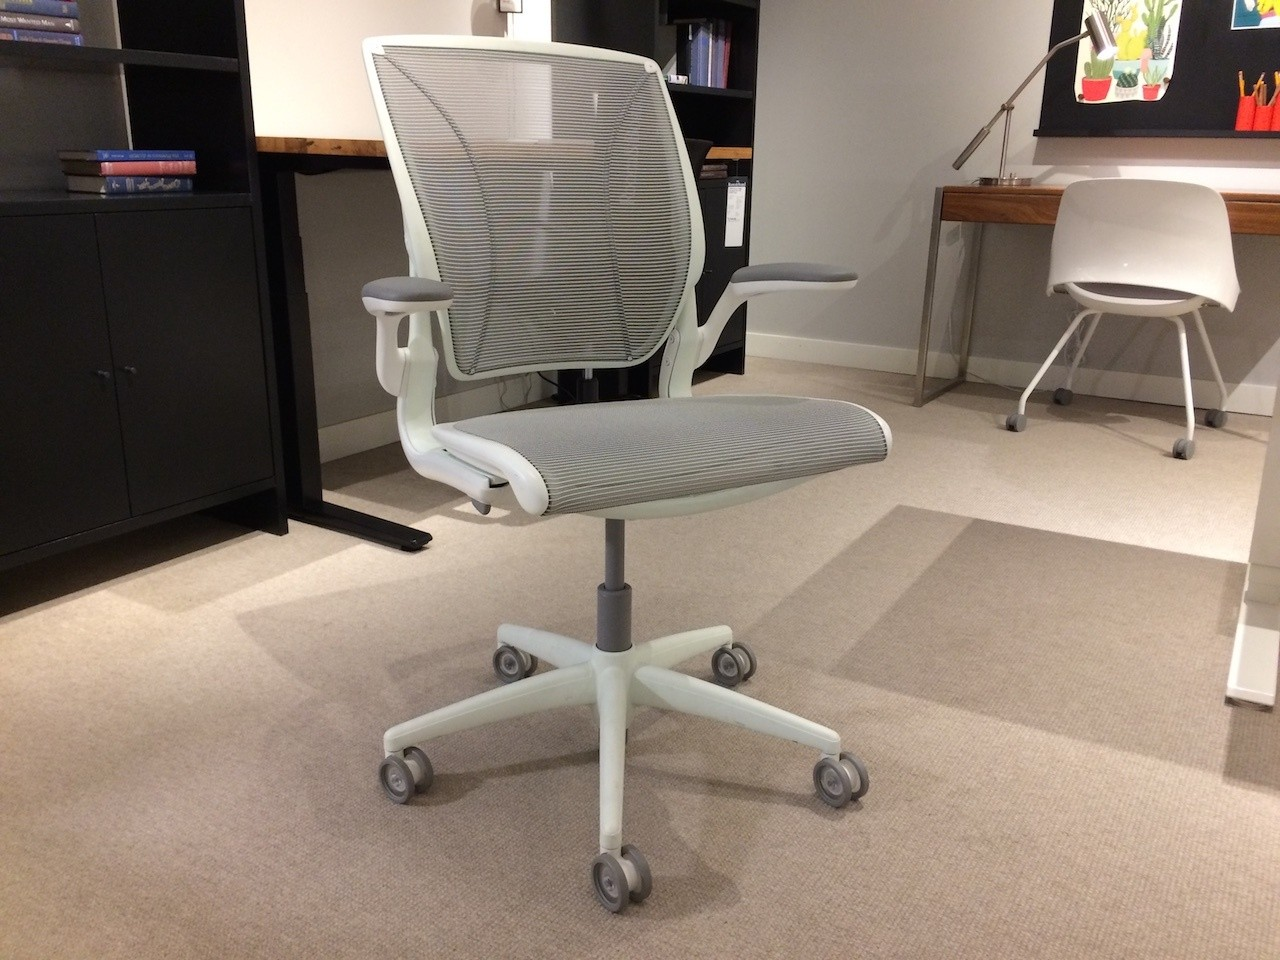 Humanscale Diffrient World Chair The Humanscale Diffrient World Chair Reviewed Office